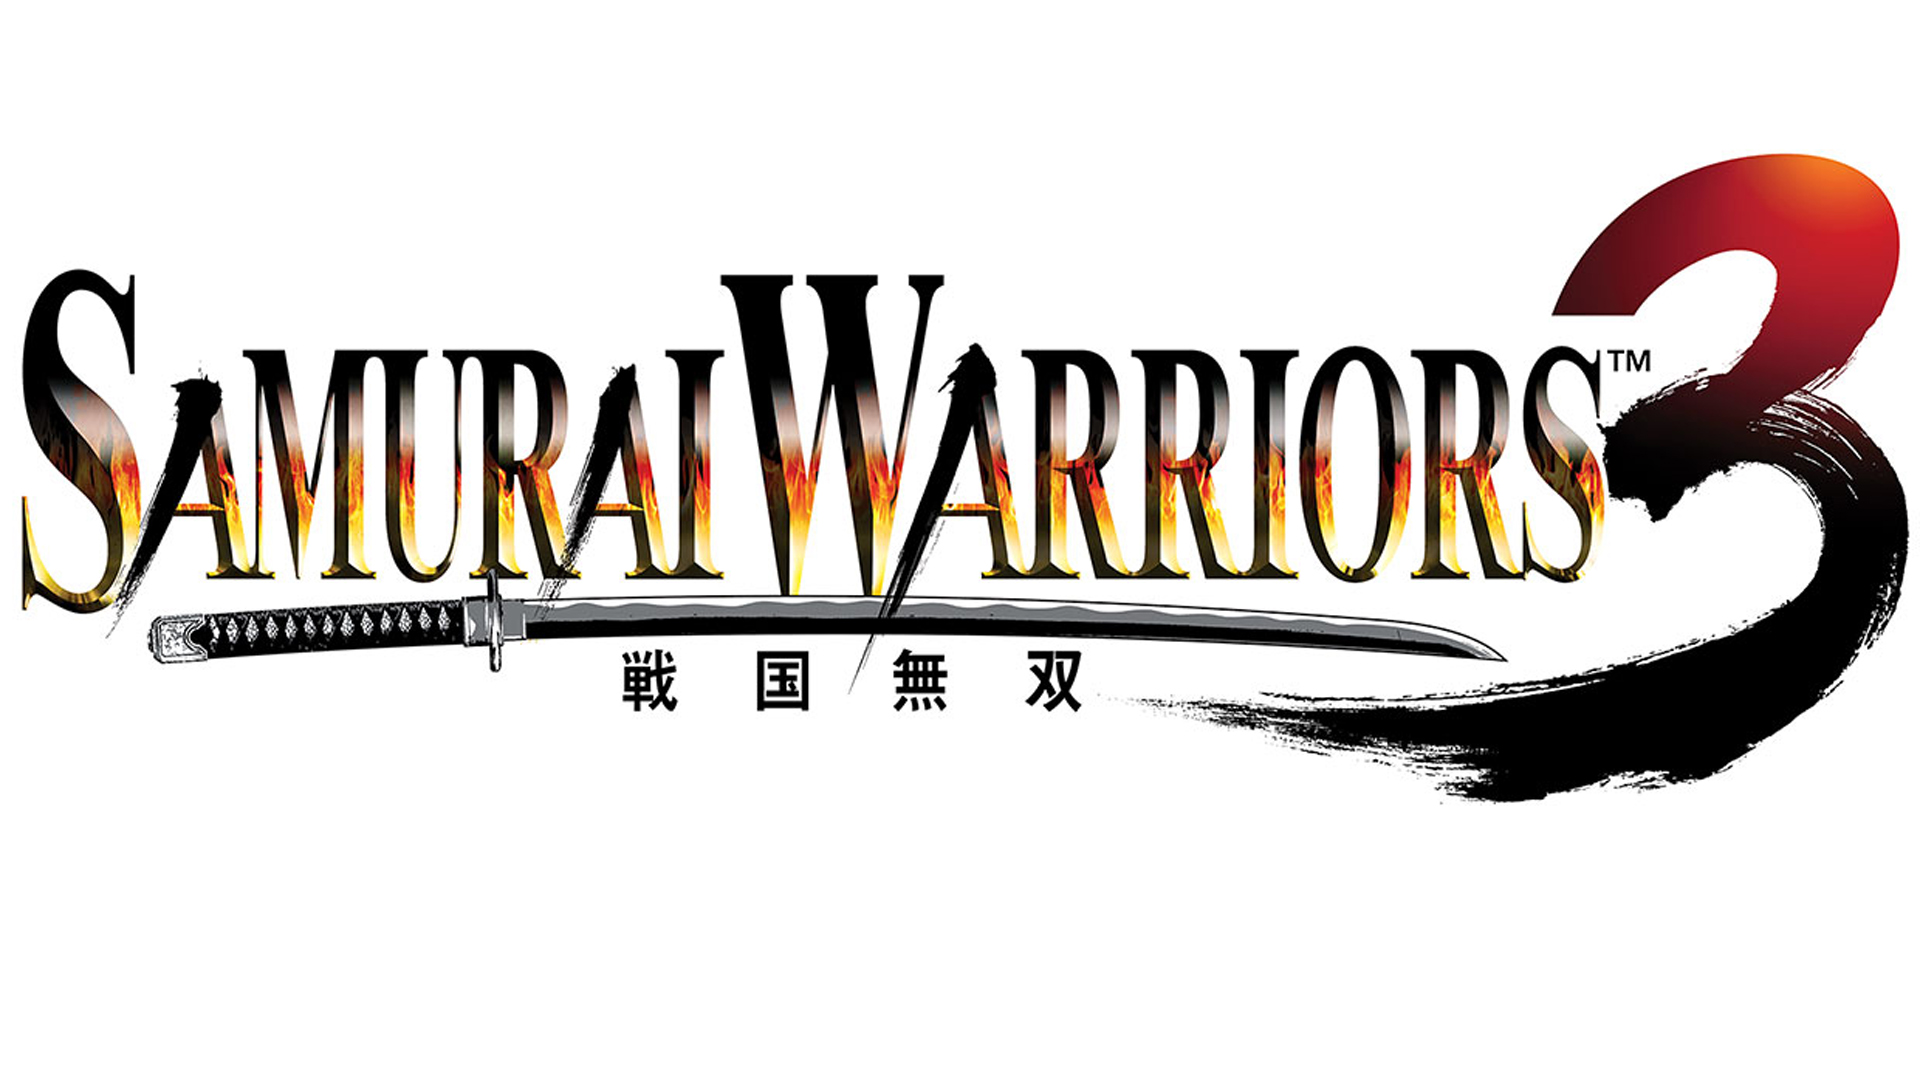 Samurai Warriors 3 Logo